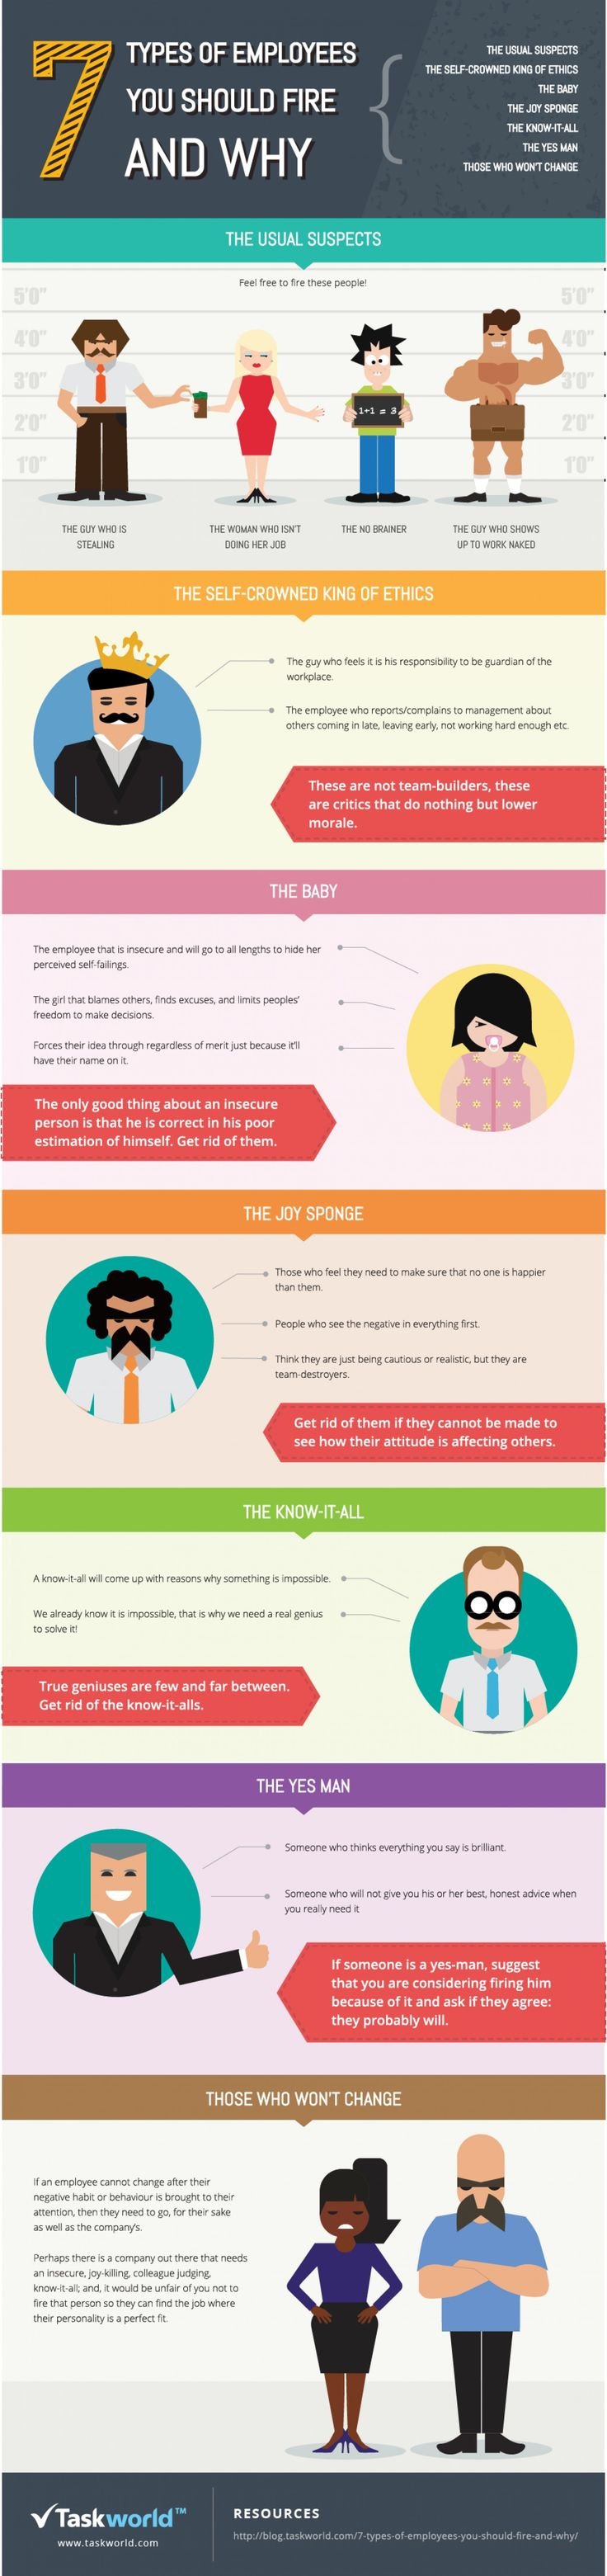 7 Types Of Employees You Should Fire Infographic Employees Business